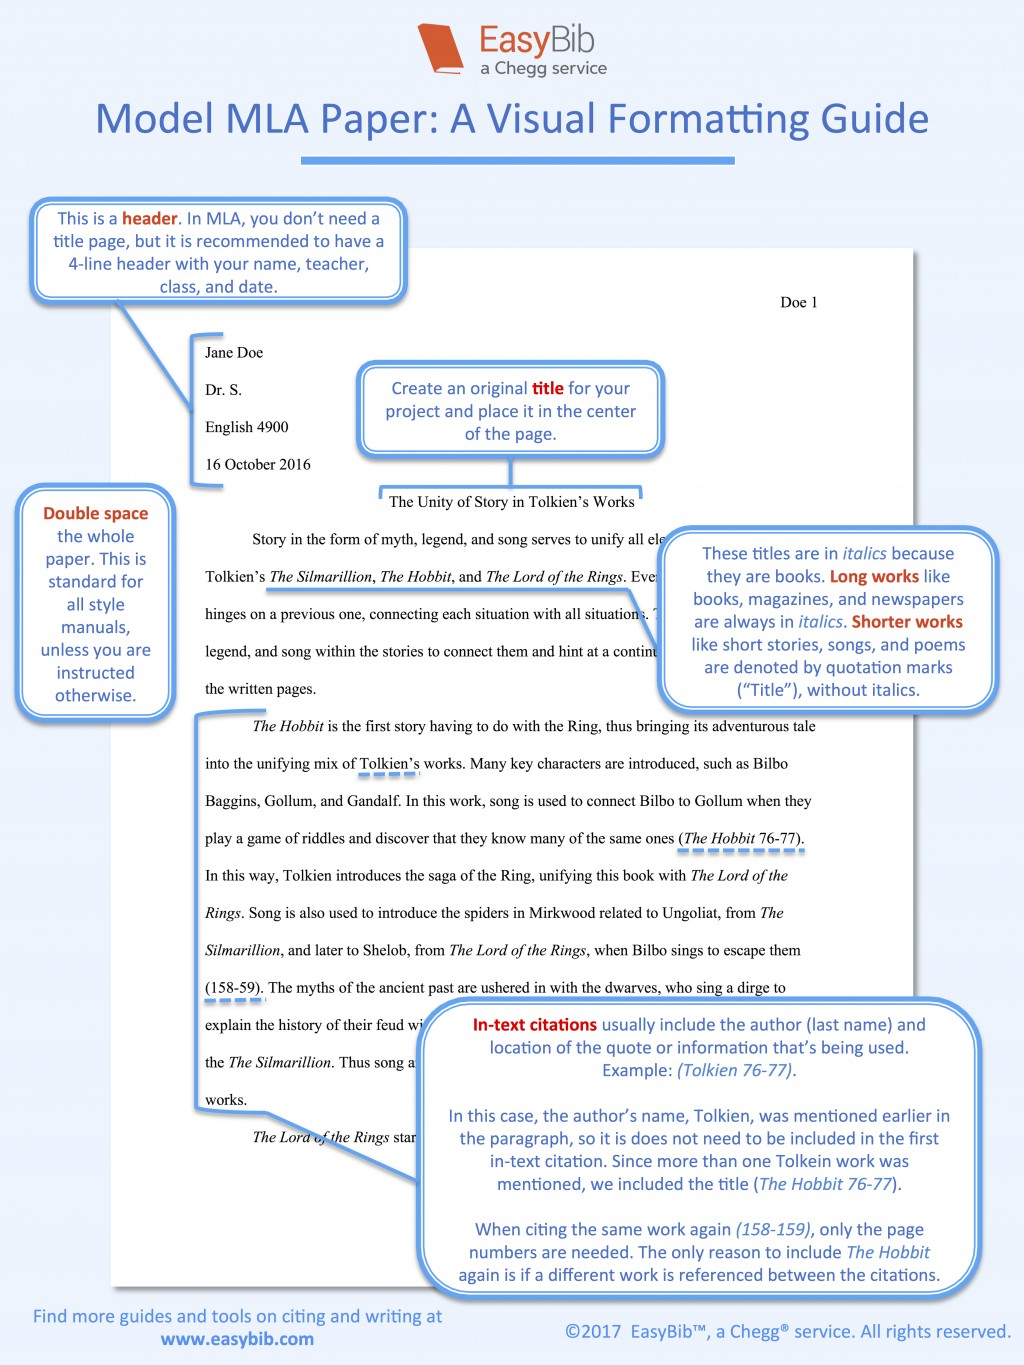 006 Model Mla Paper Research How Do You Cite In Imposing A Format Website To Things Large